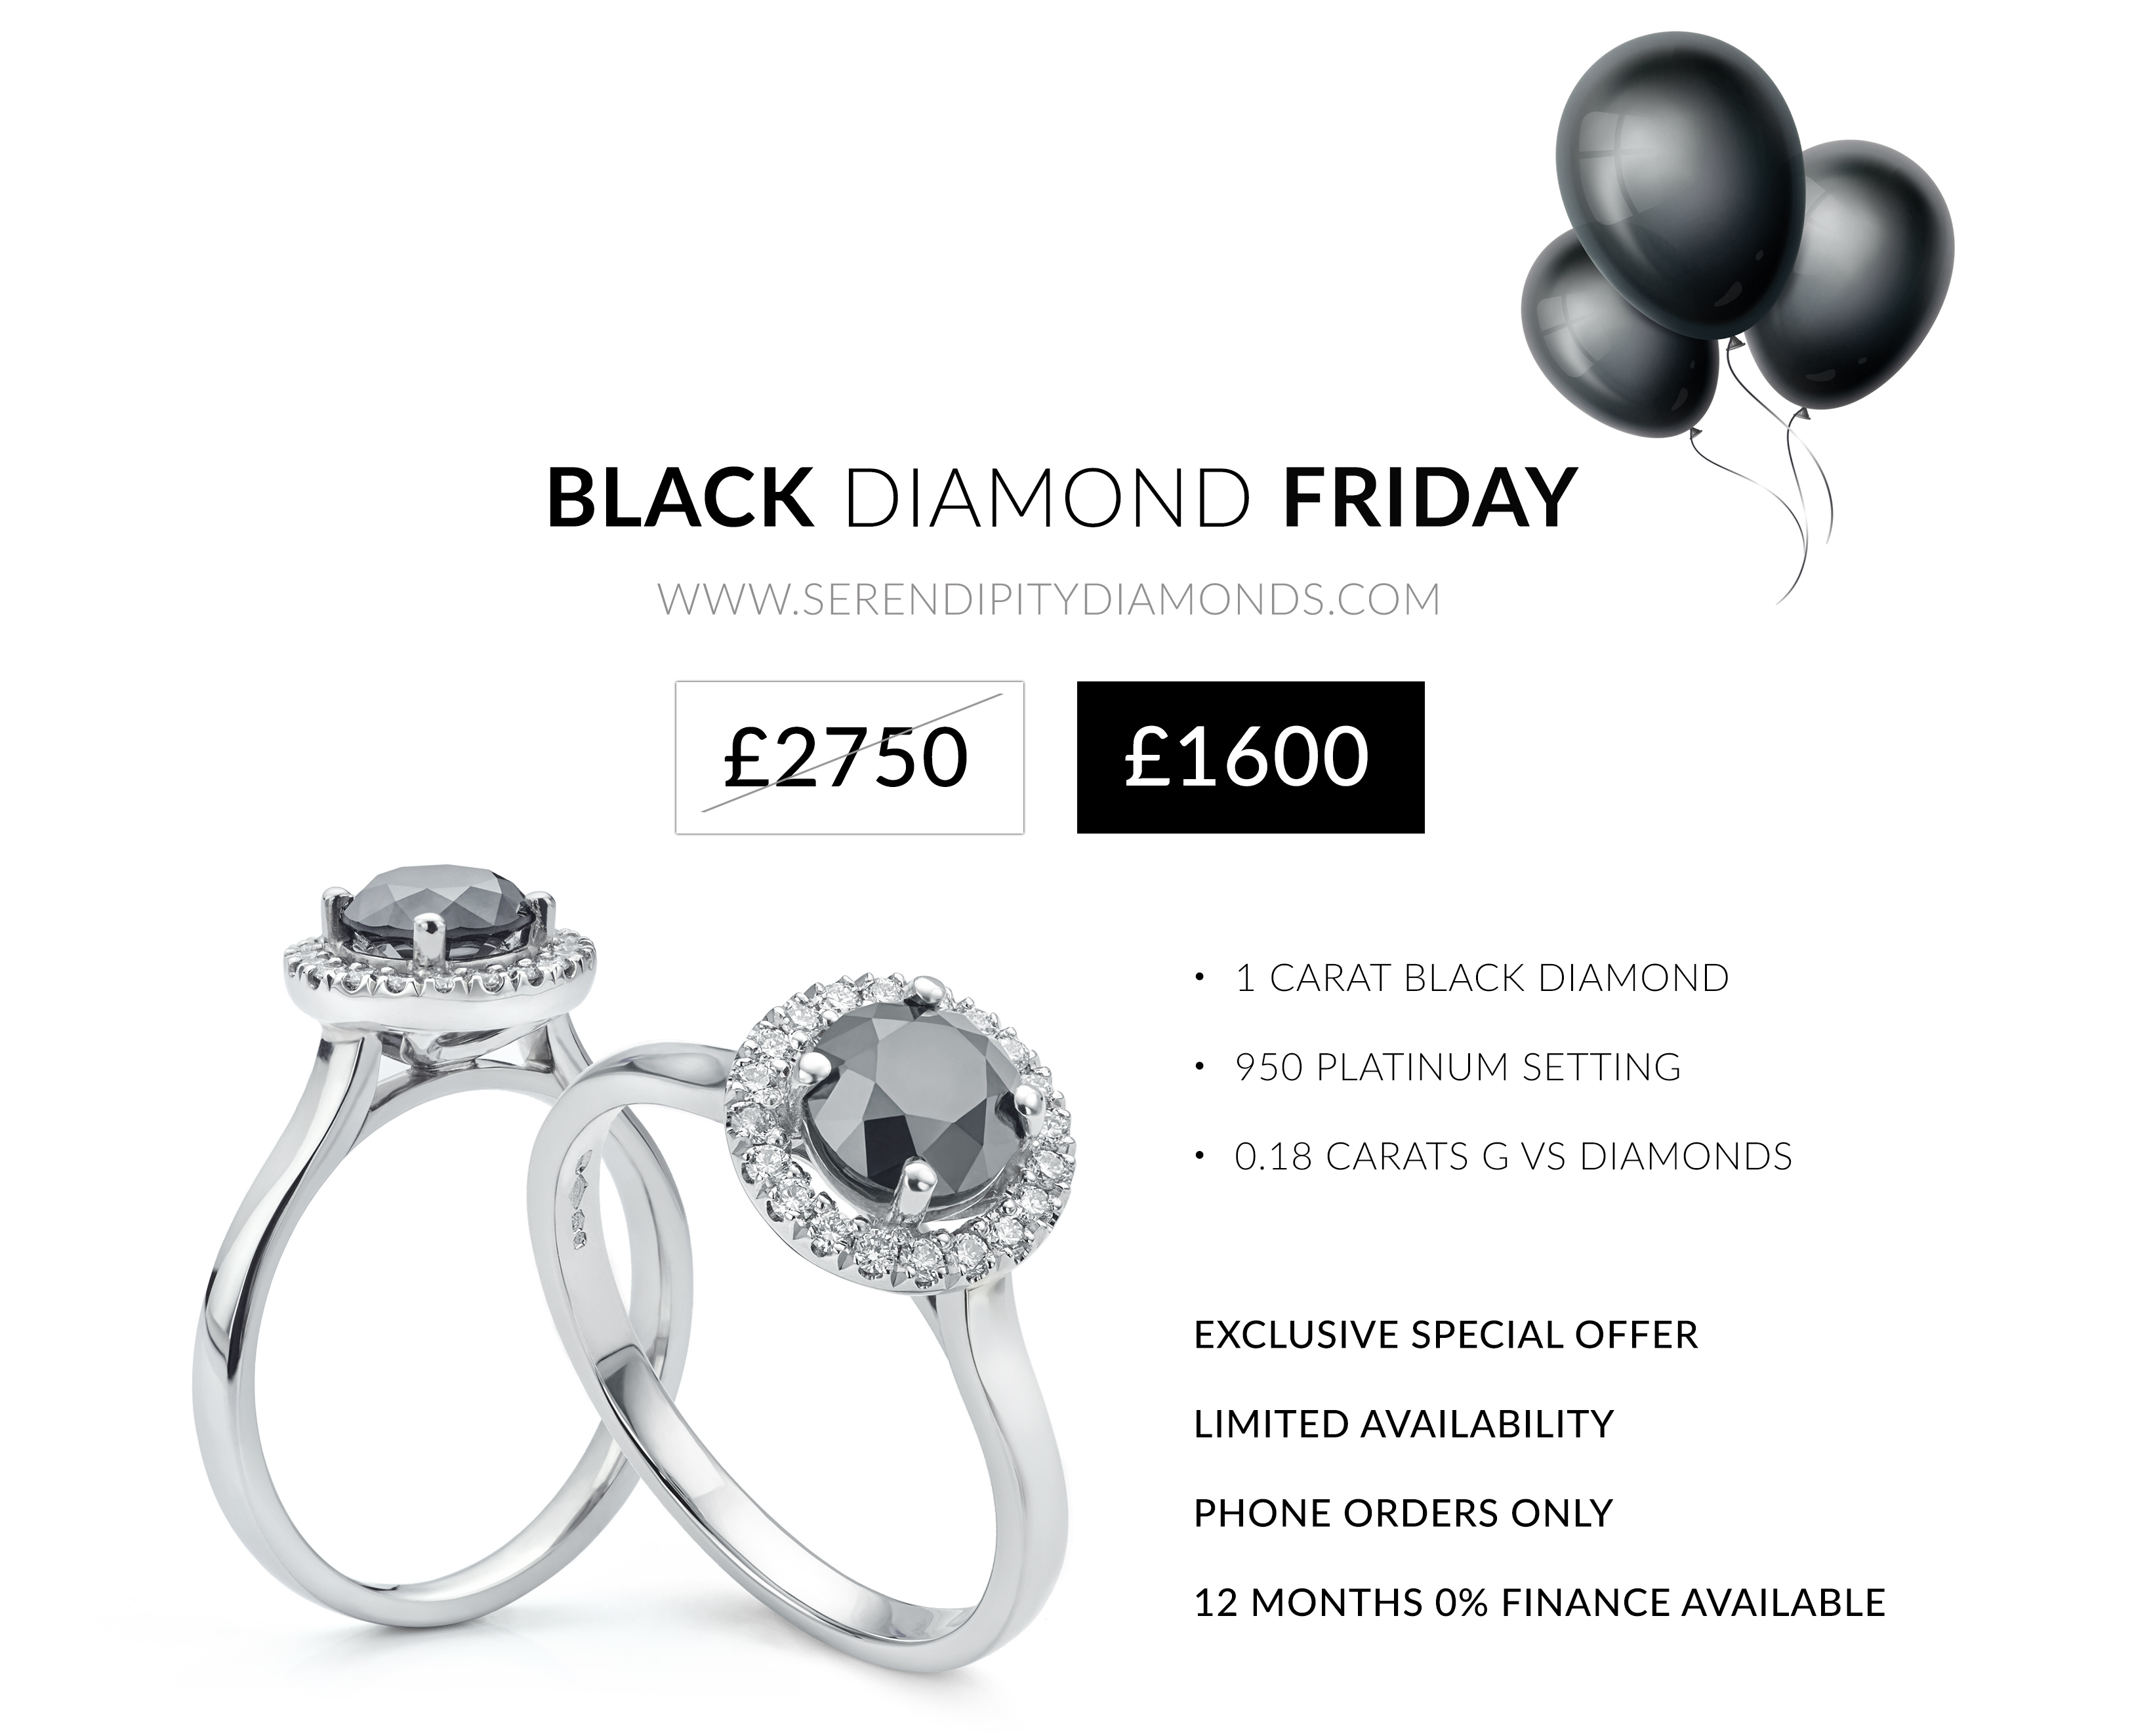 Black Friday 2019 Exclusive Jewellery Offer